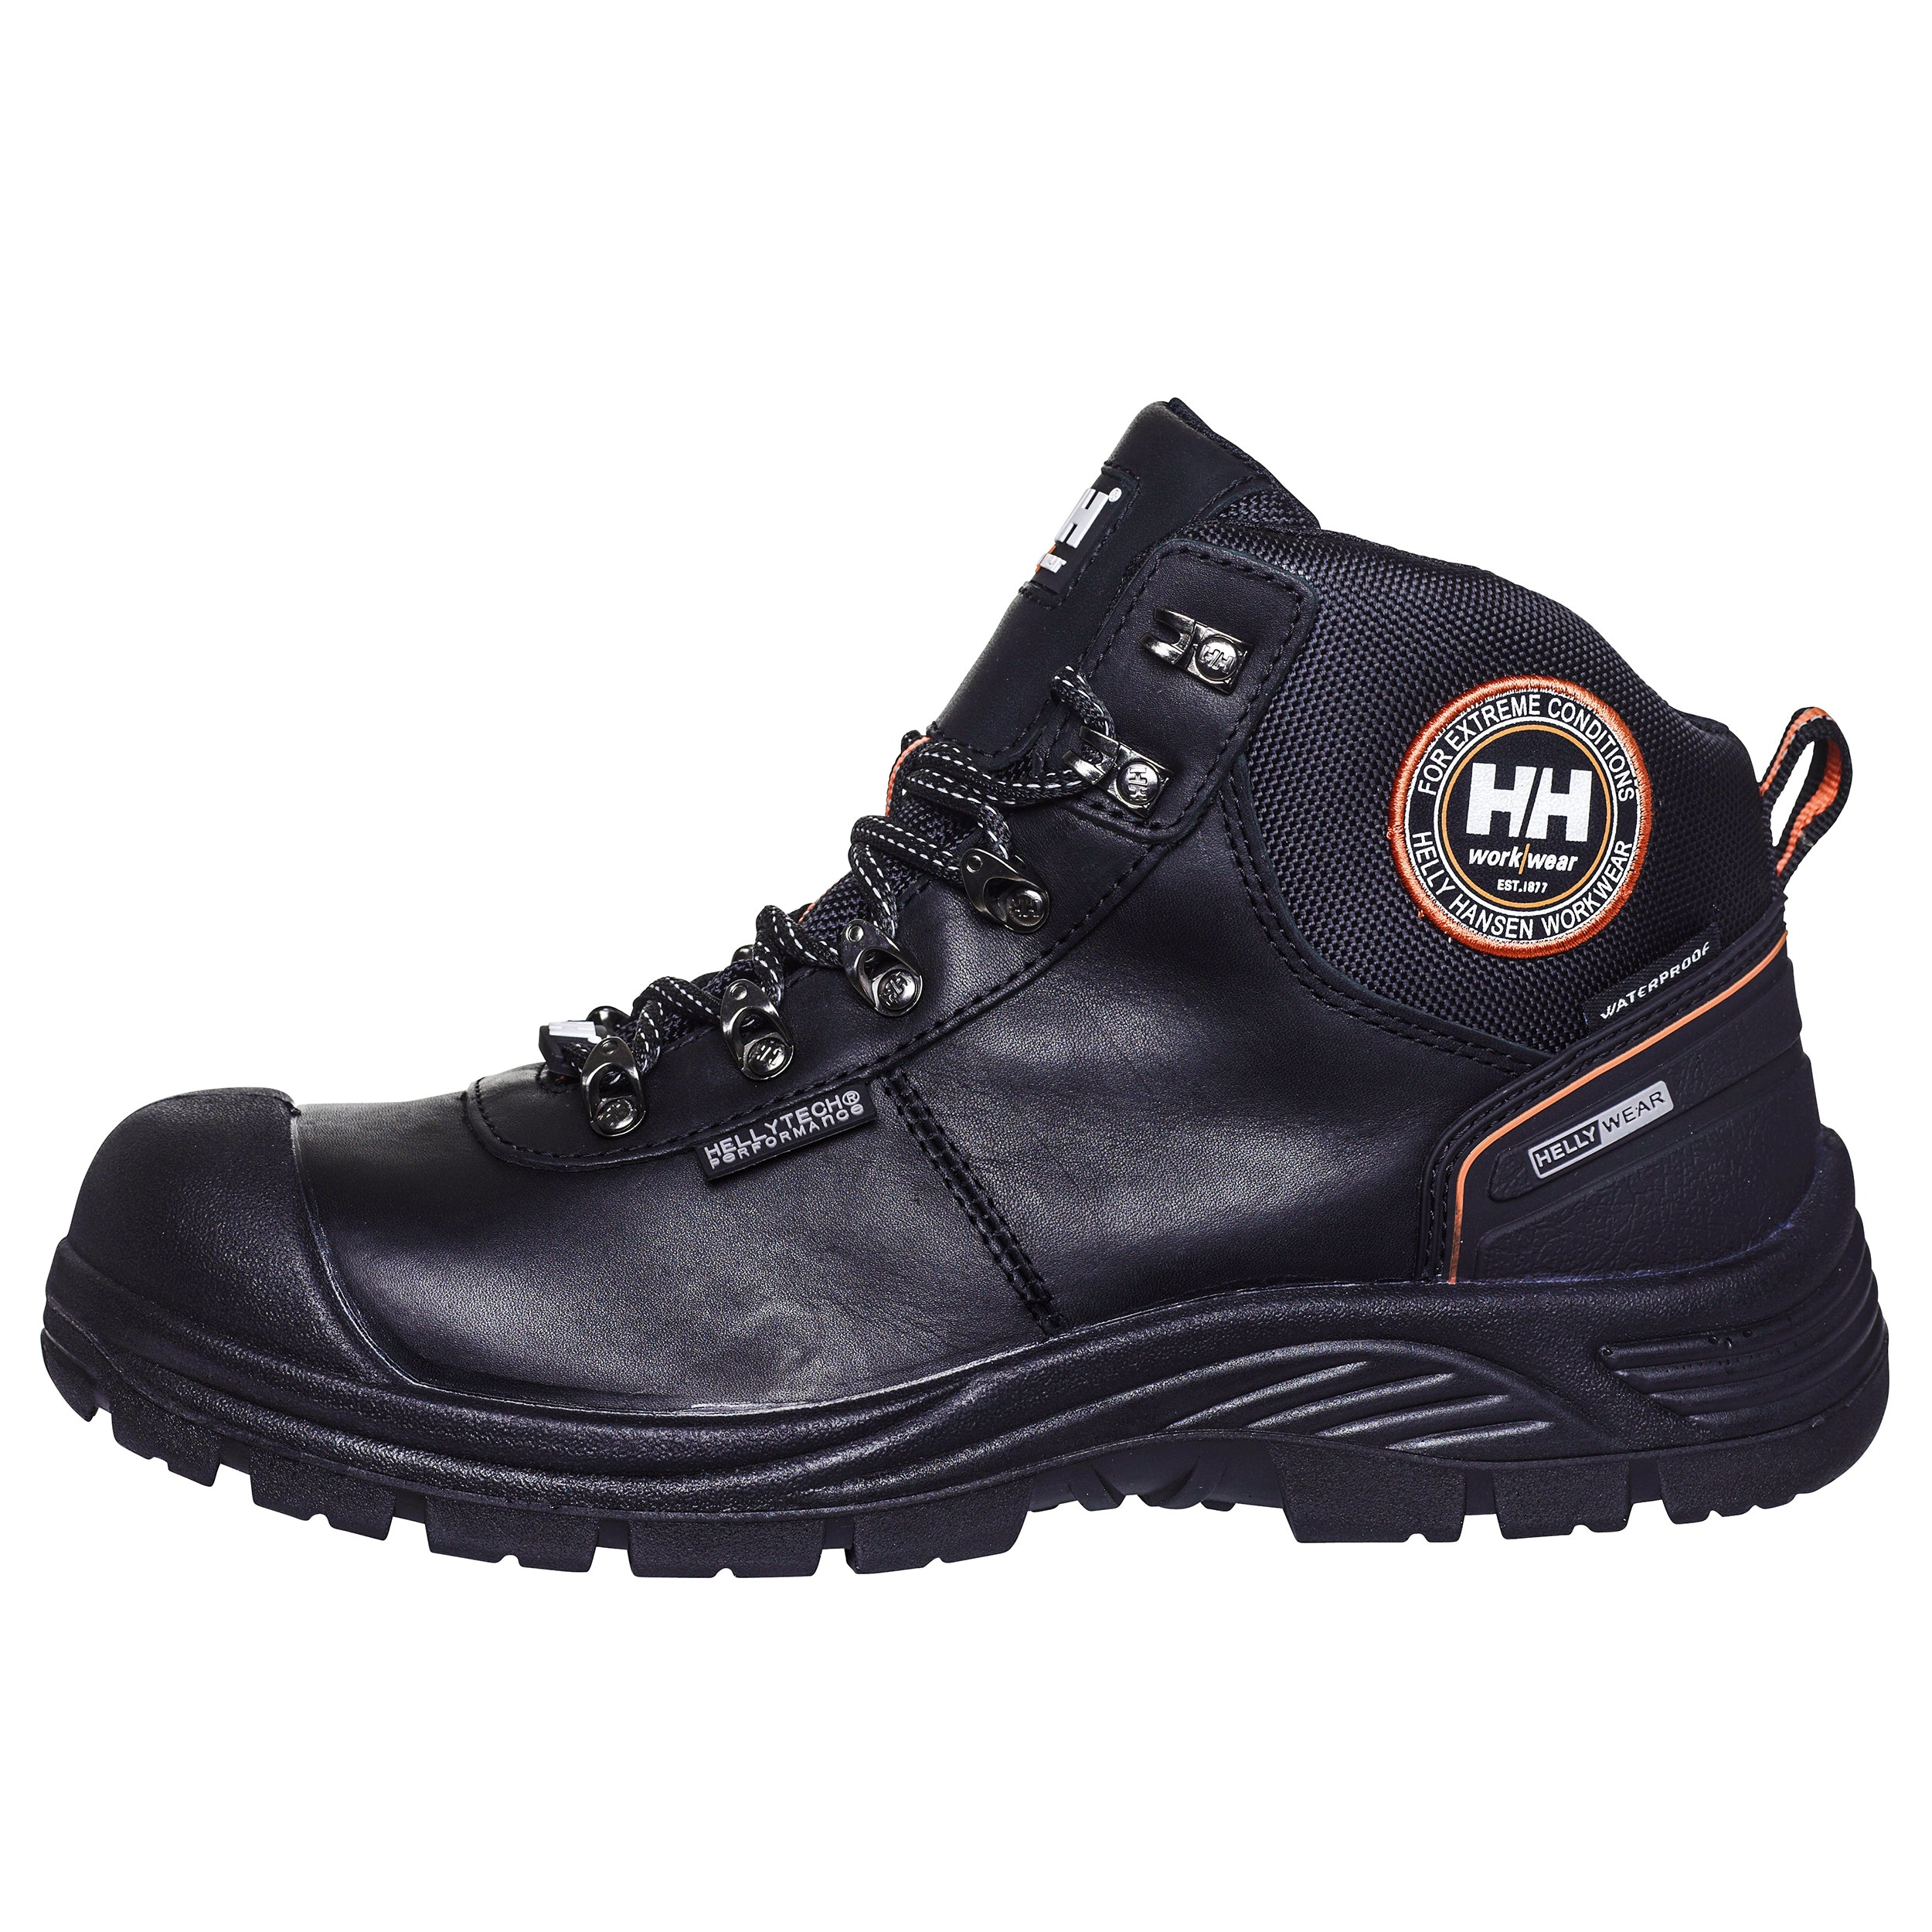 87b9ea909c Buy Helly Hansen 78250 Chelsea Mid HT Safety Boots Online | Engineering  Agencies